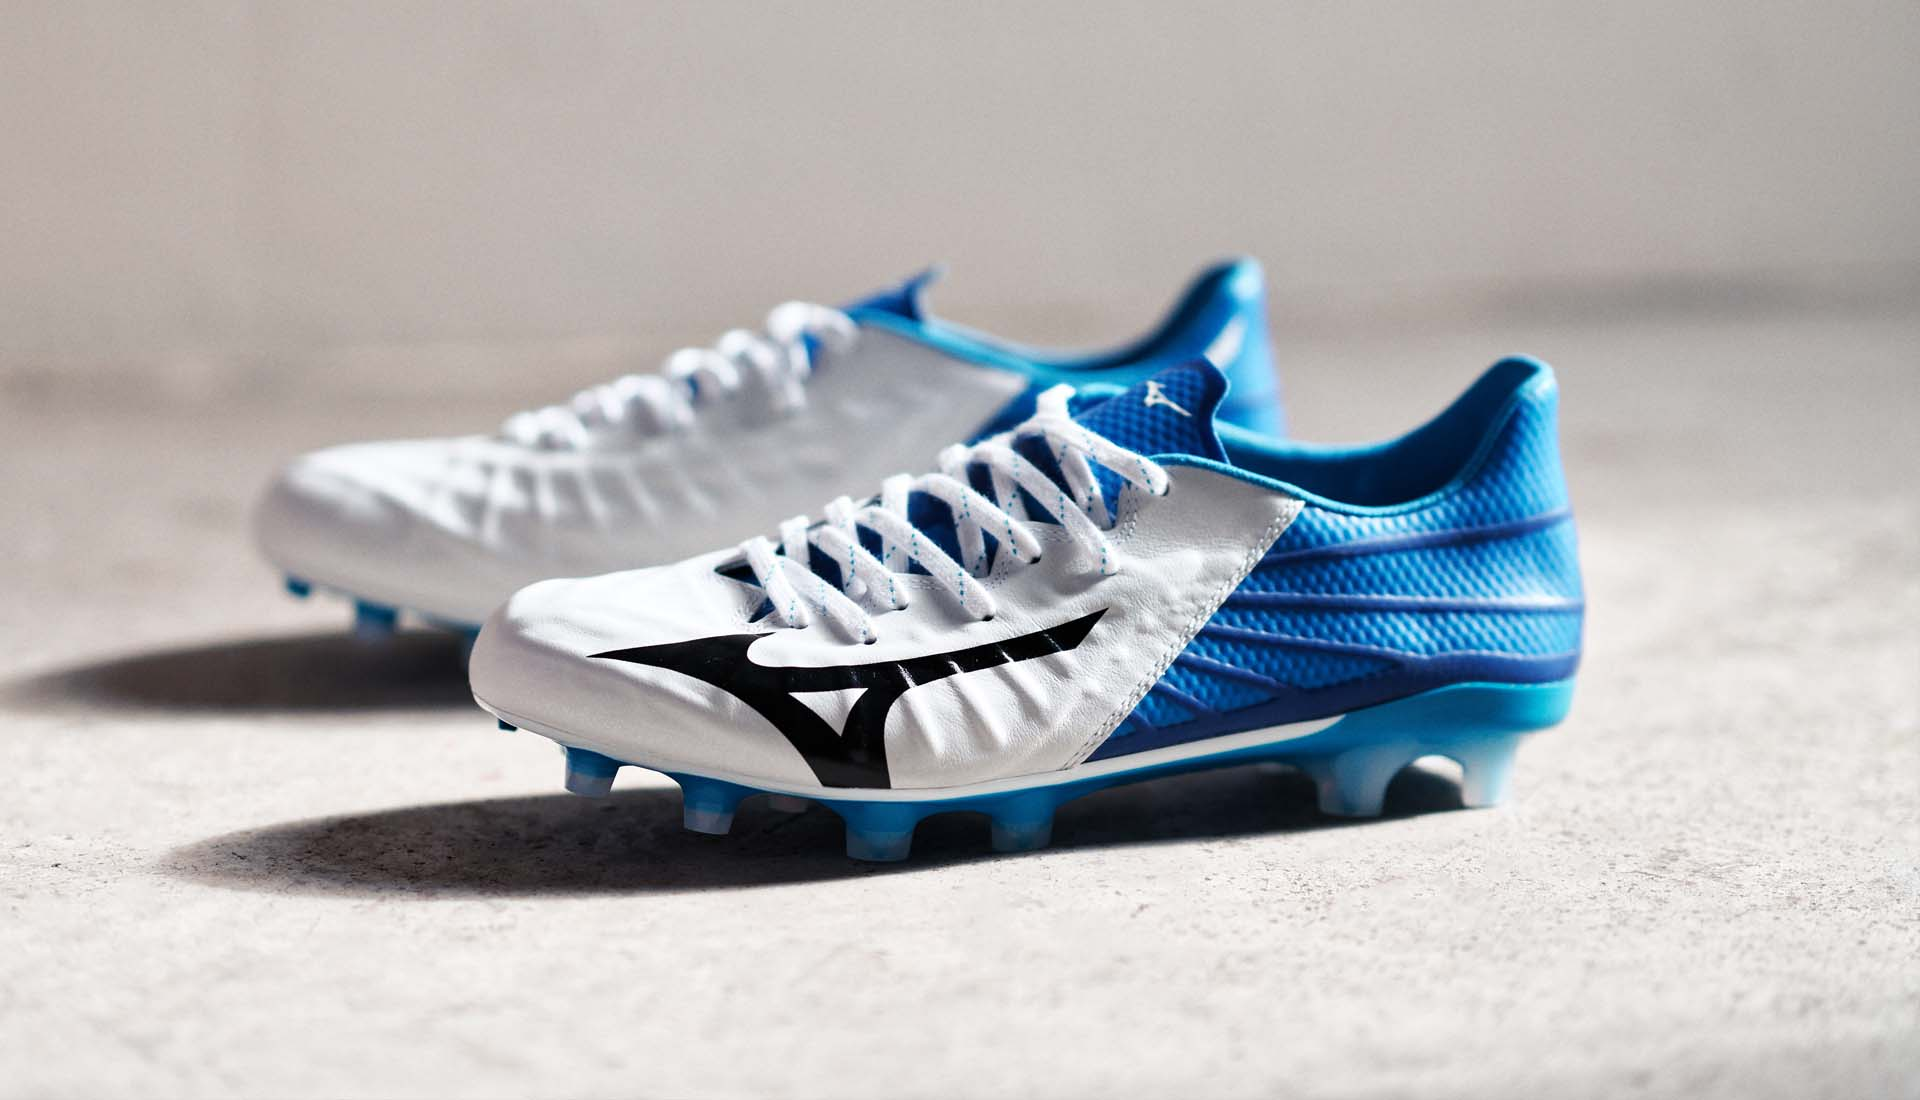 finest selection dfe5e 6bfc5 Mizuno Launch The Next-Generation Rebula 3 Football Boots ...